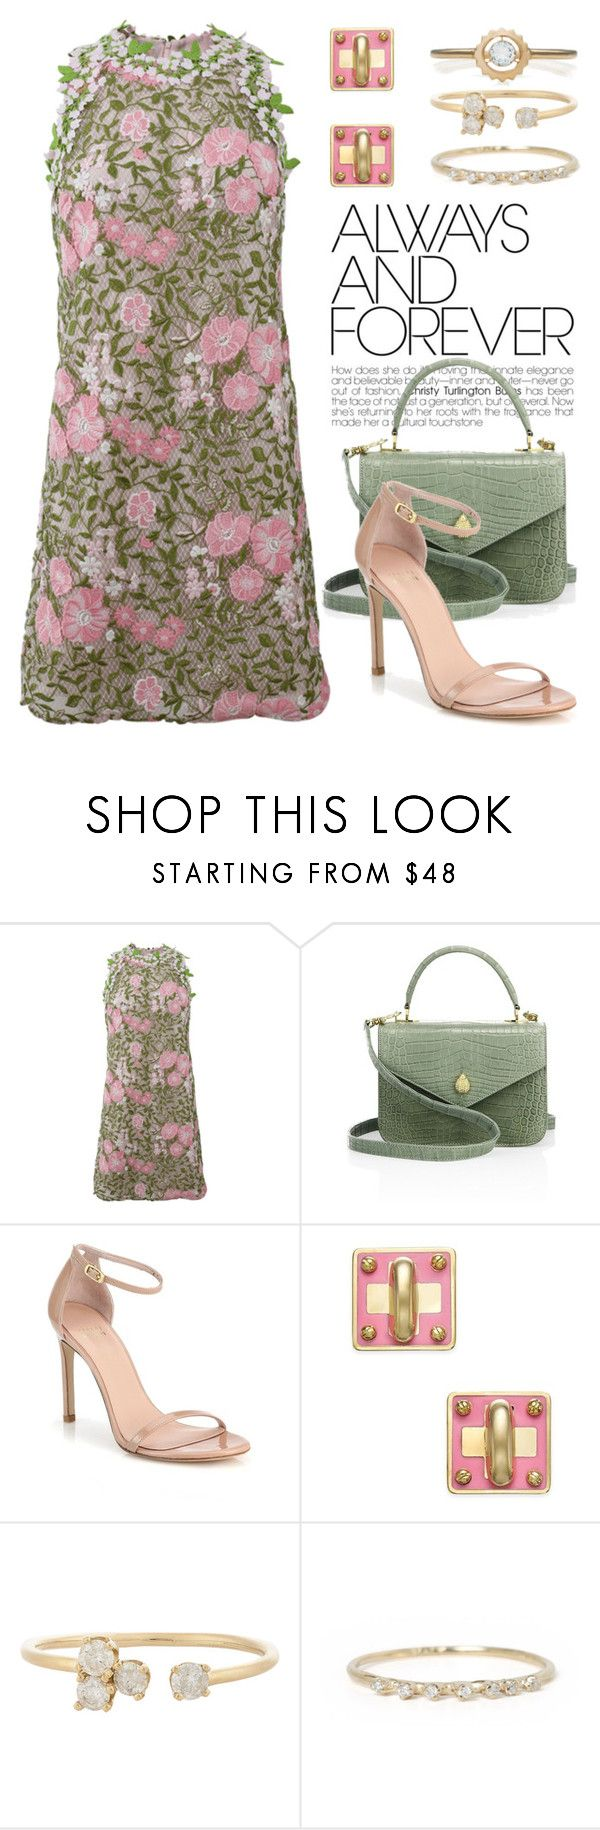 """""""Floral Printed Dress 2900"""" by boxthoughts ❤ liked on Polyvore featuring Giambattista Valli, Ethan K, Stuart Weitzman, Marc by Marc Jacobs, Loren Stewart and Zoe & Morgan"""